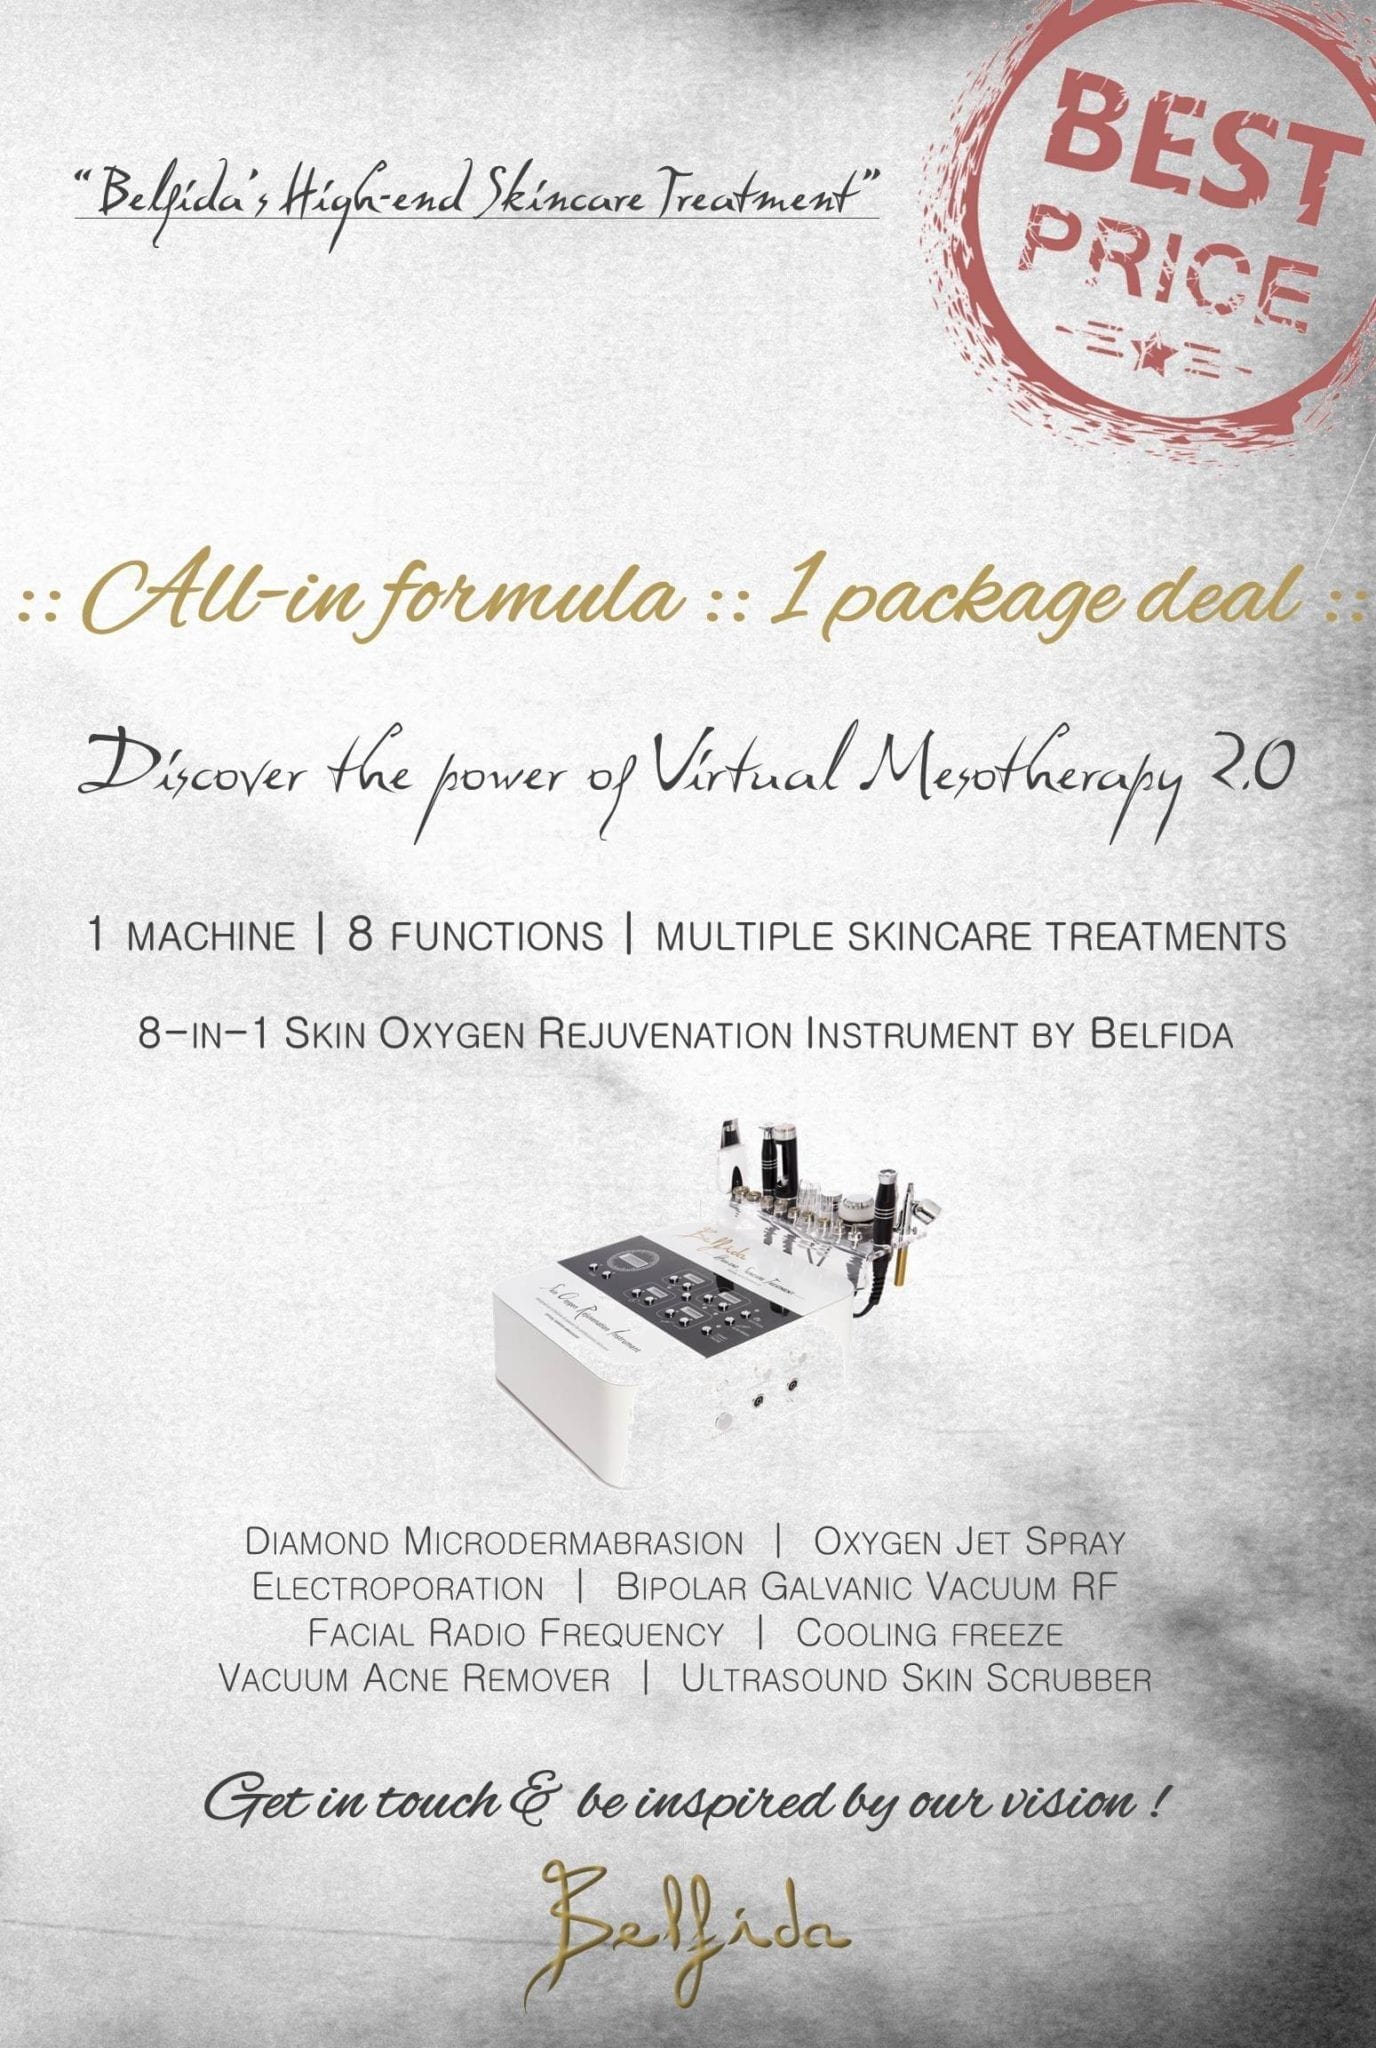 Belfida_High-end Skincare Treatment_Virtual Mesotherapy